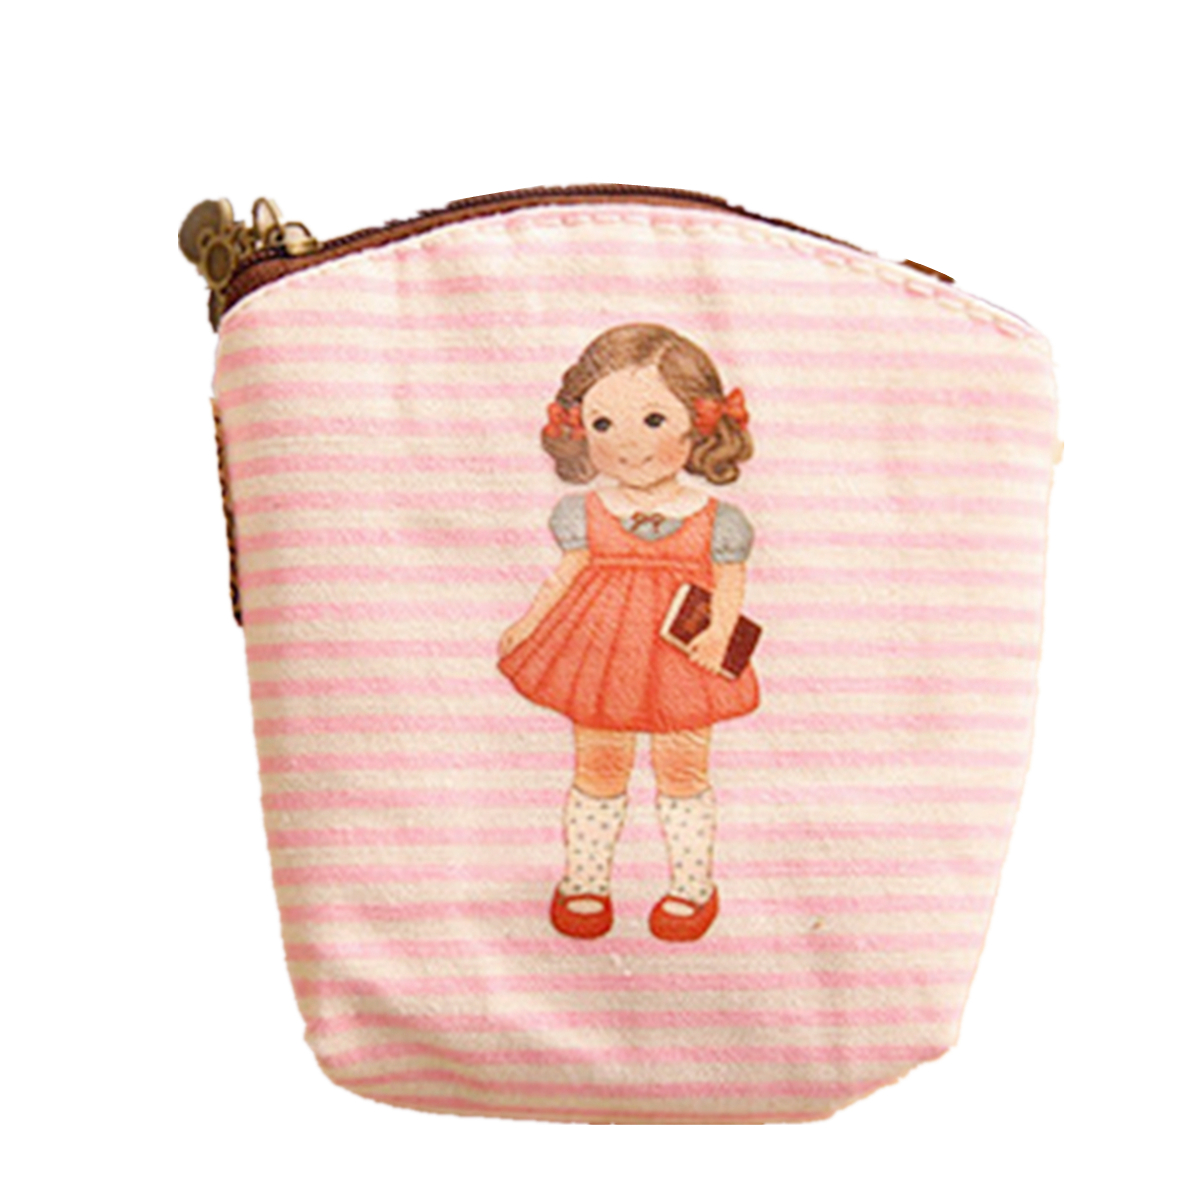 Cute Girl Doll Canvas Coin Purse Pouch Clutch Bag